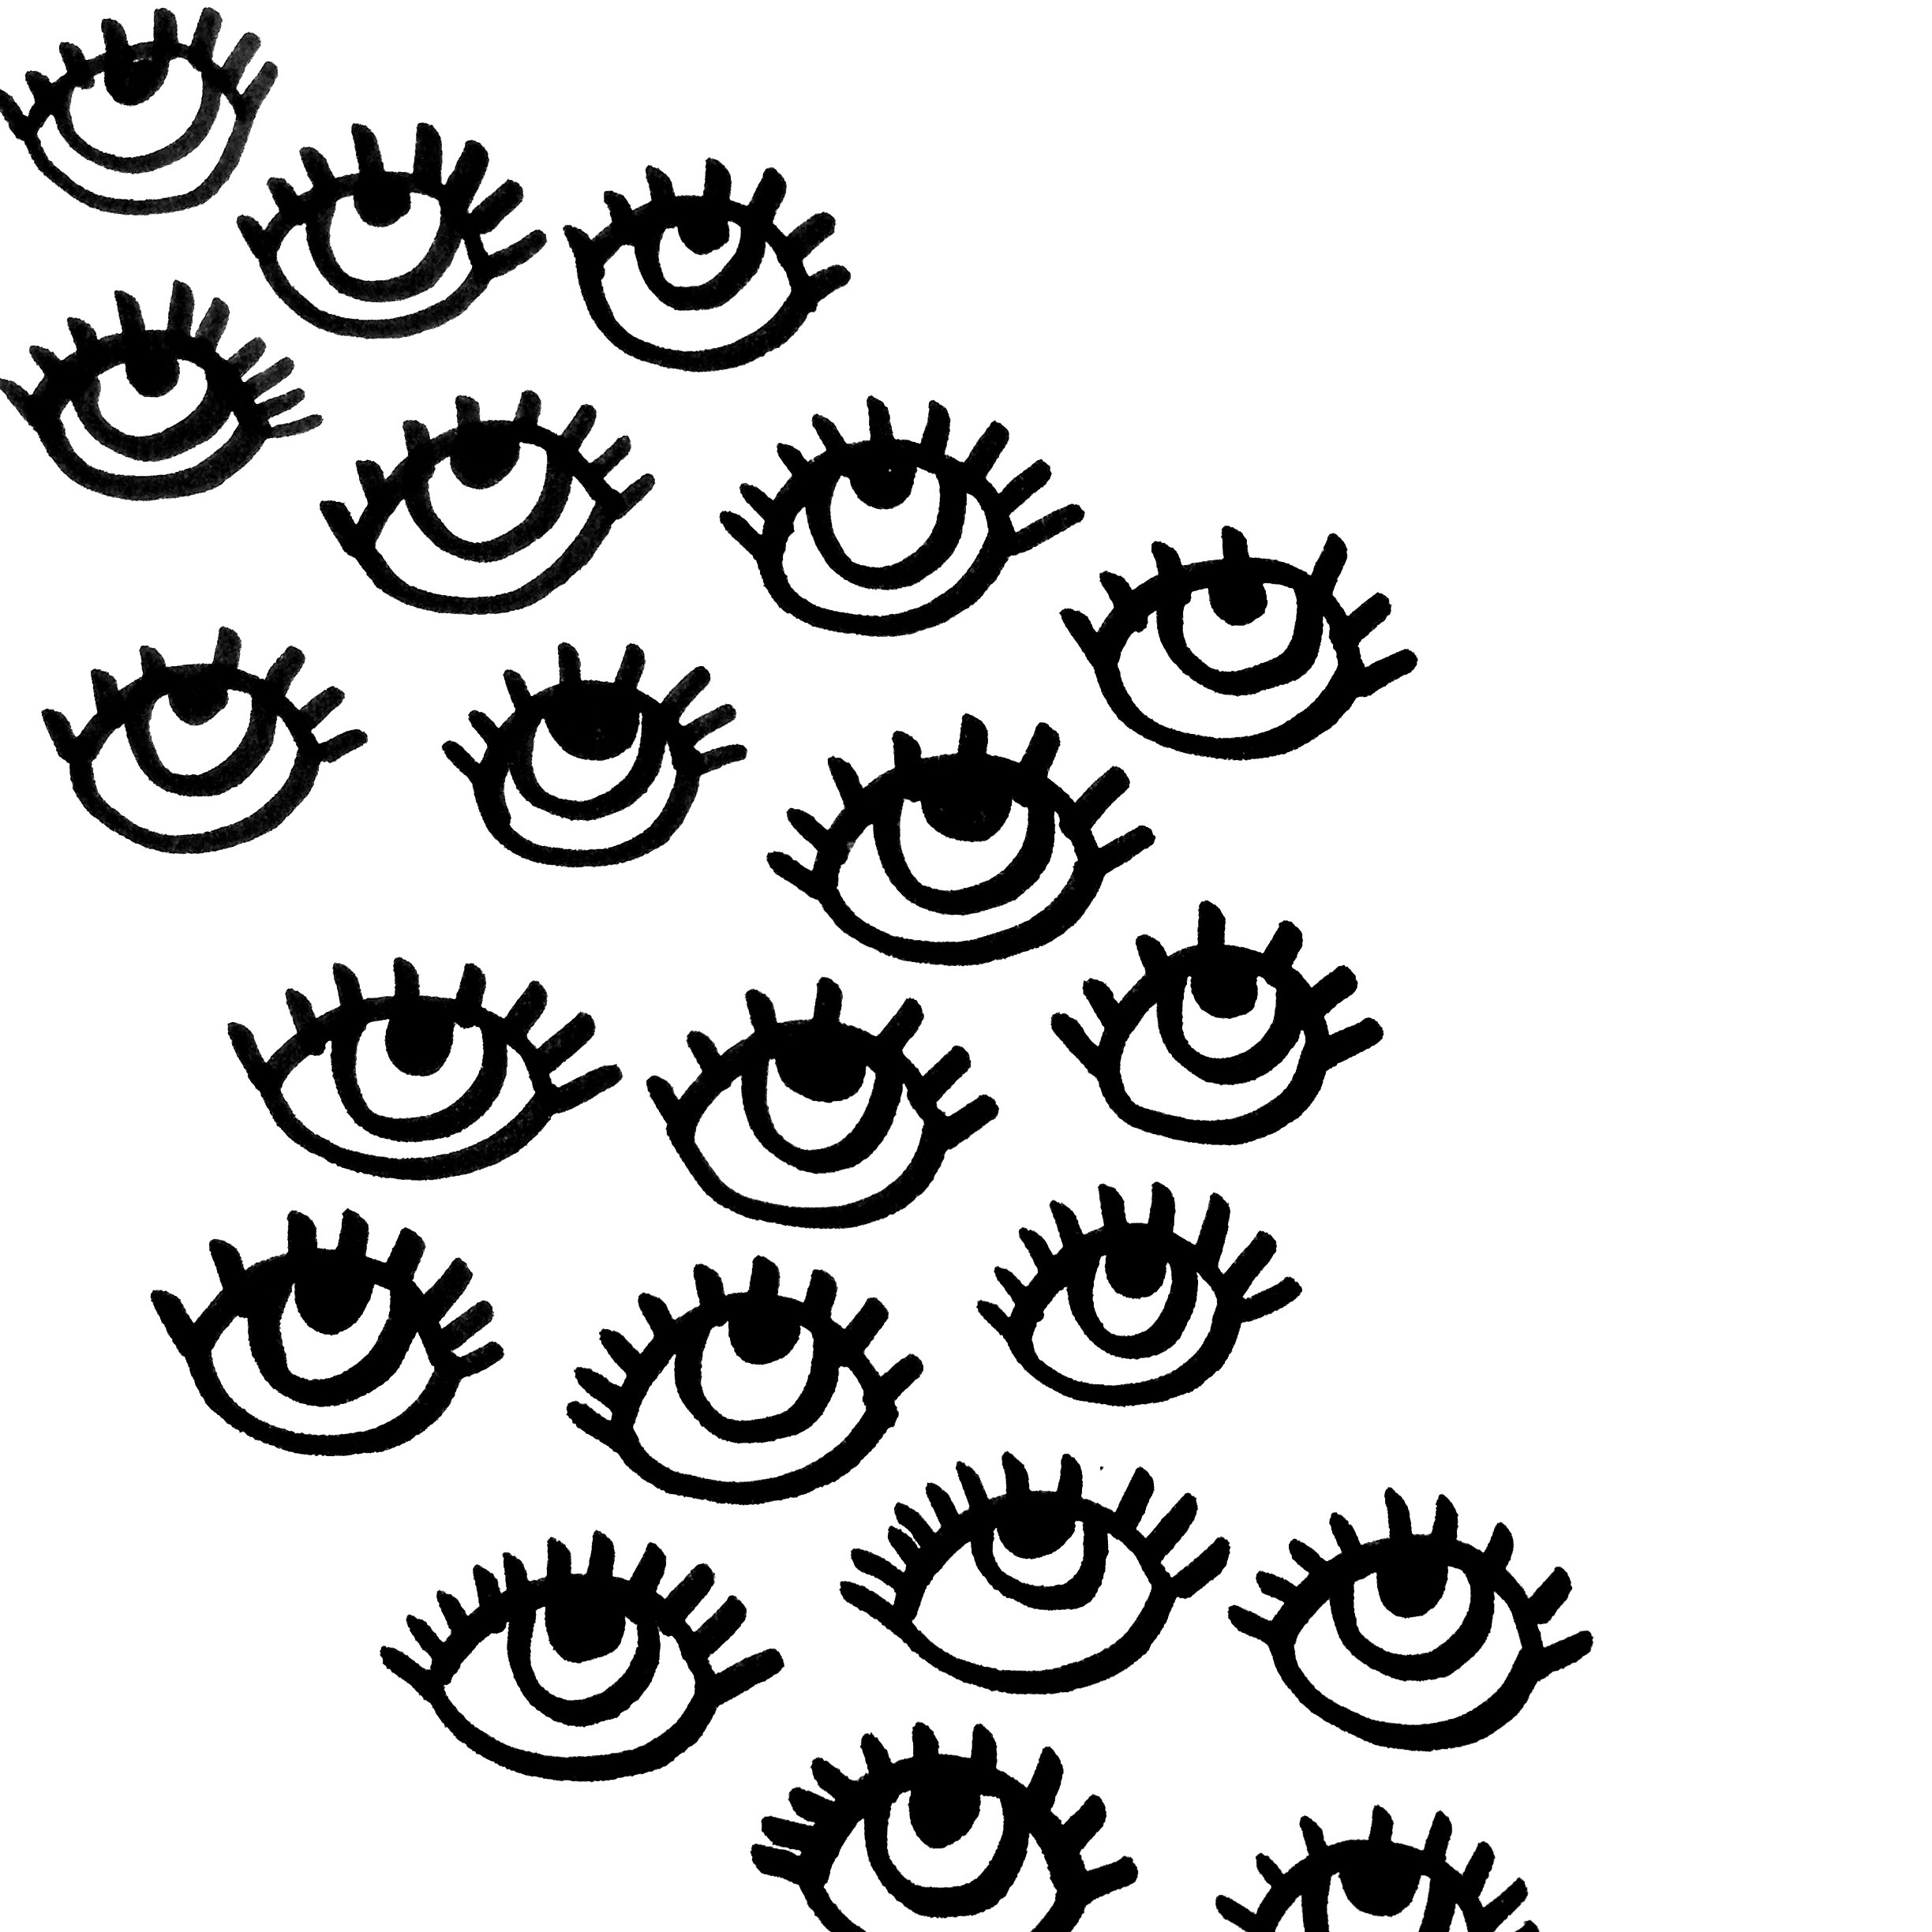 2448x2448 Eyes Illustration Use This Have Different Colors Pop Up